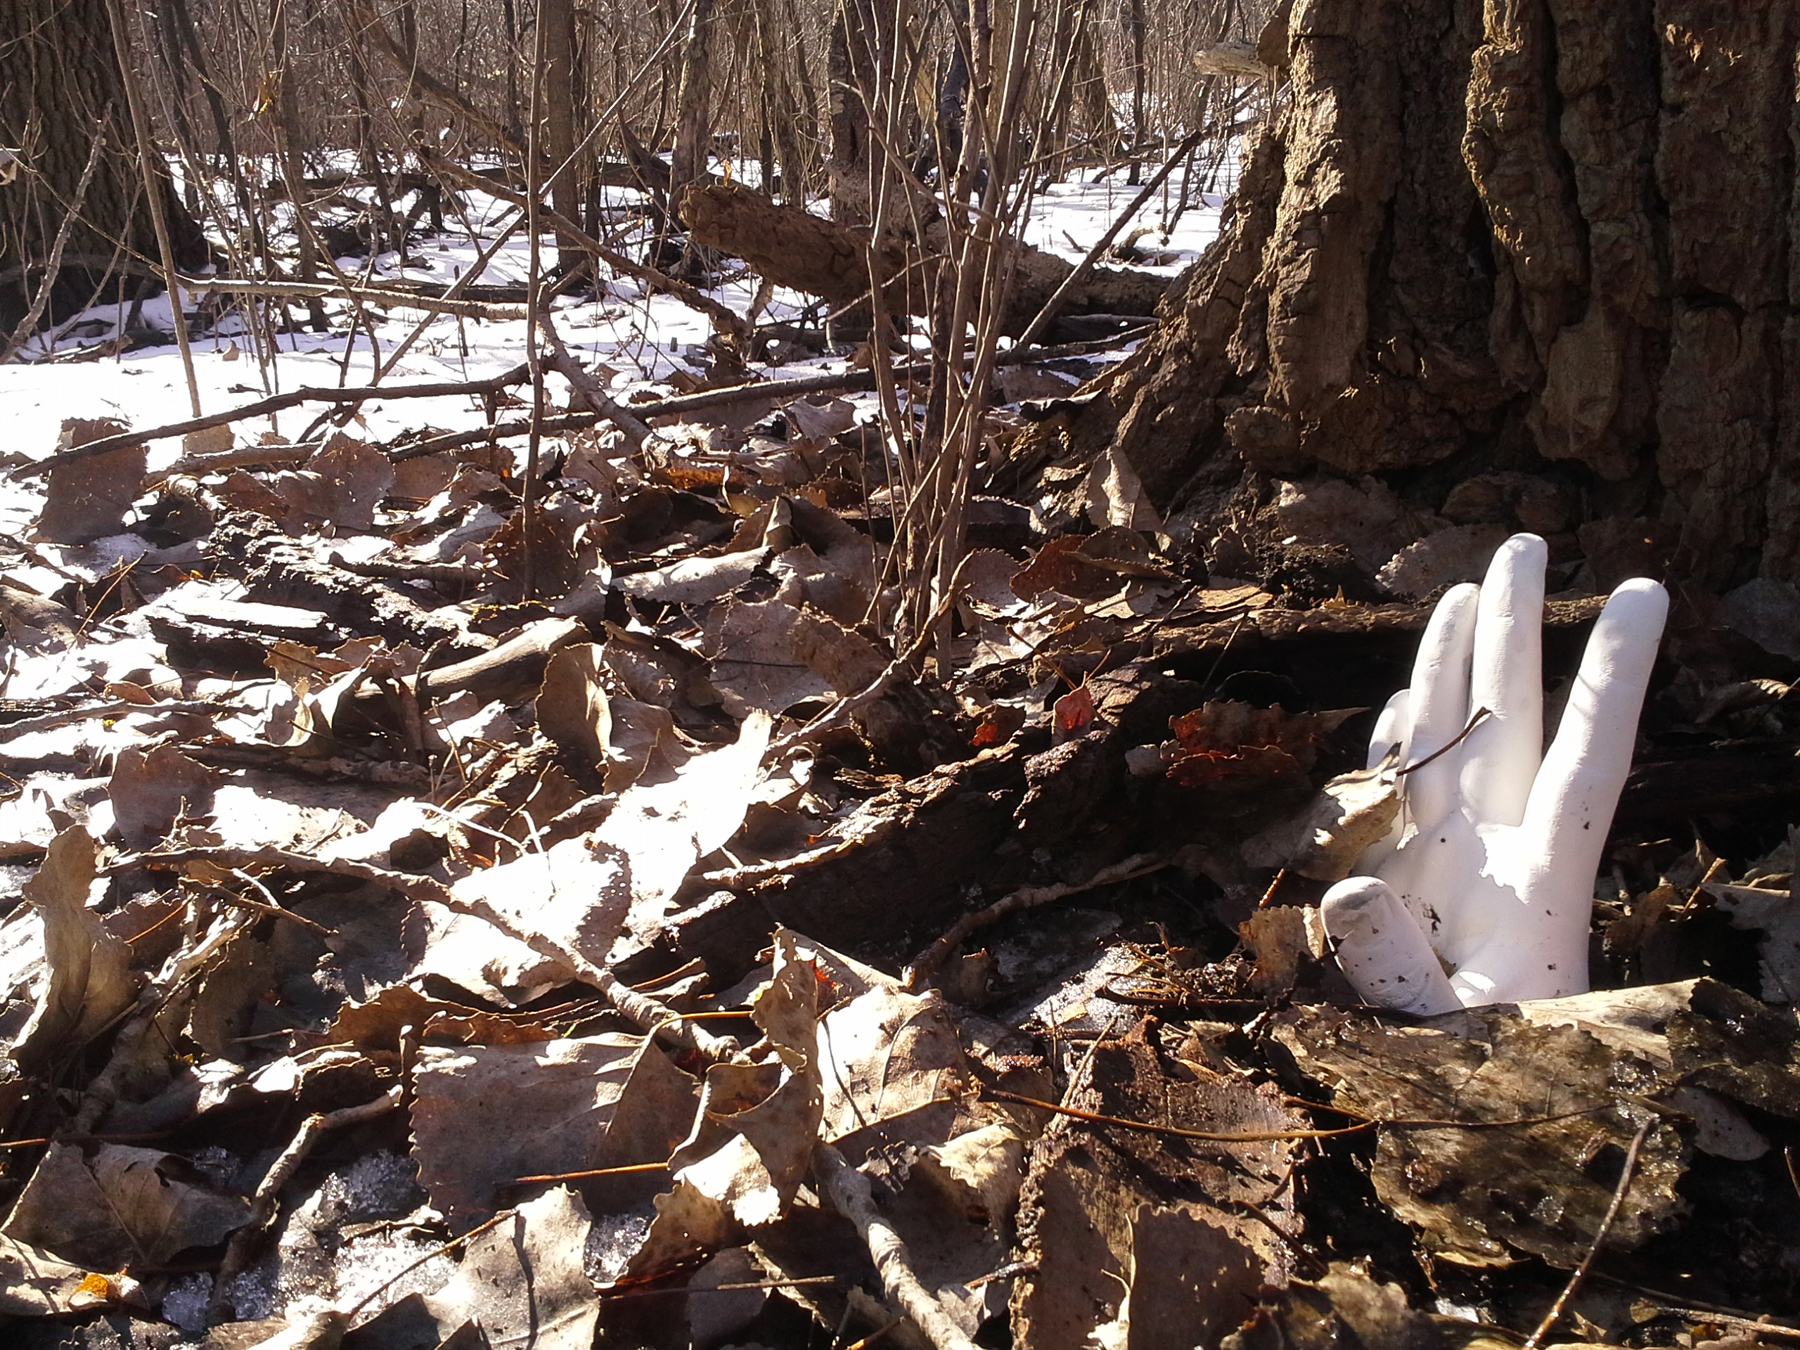 A hand reaches heavenward in The Winterbourne Woods outside of Chicago. Image courtesy of The Impossible Winterbourne.